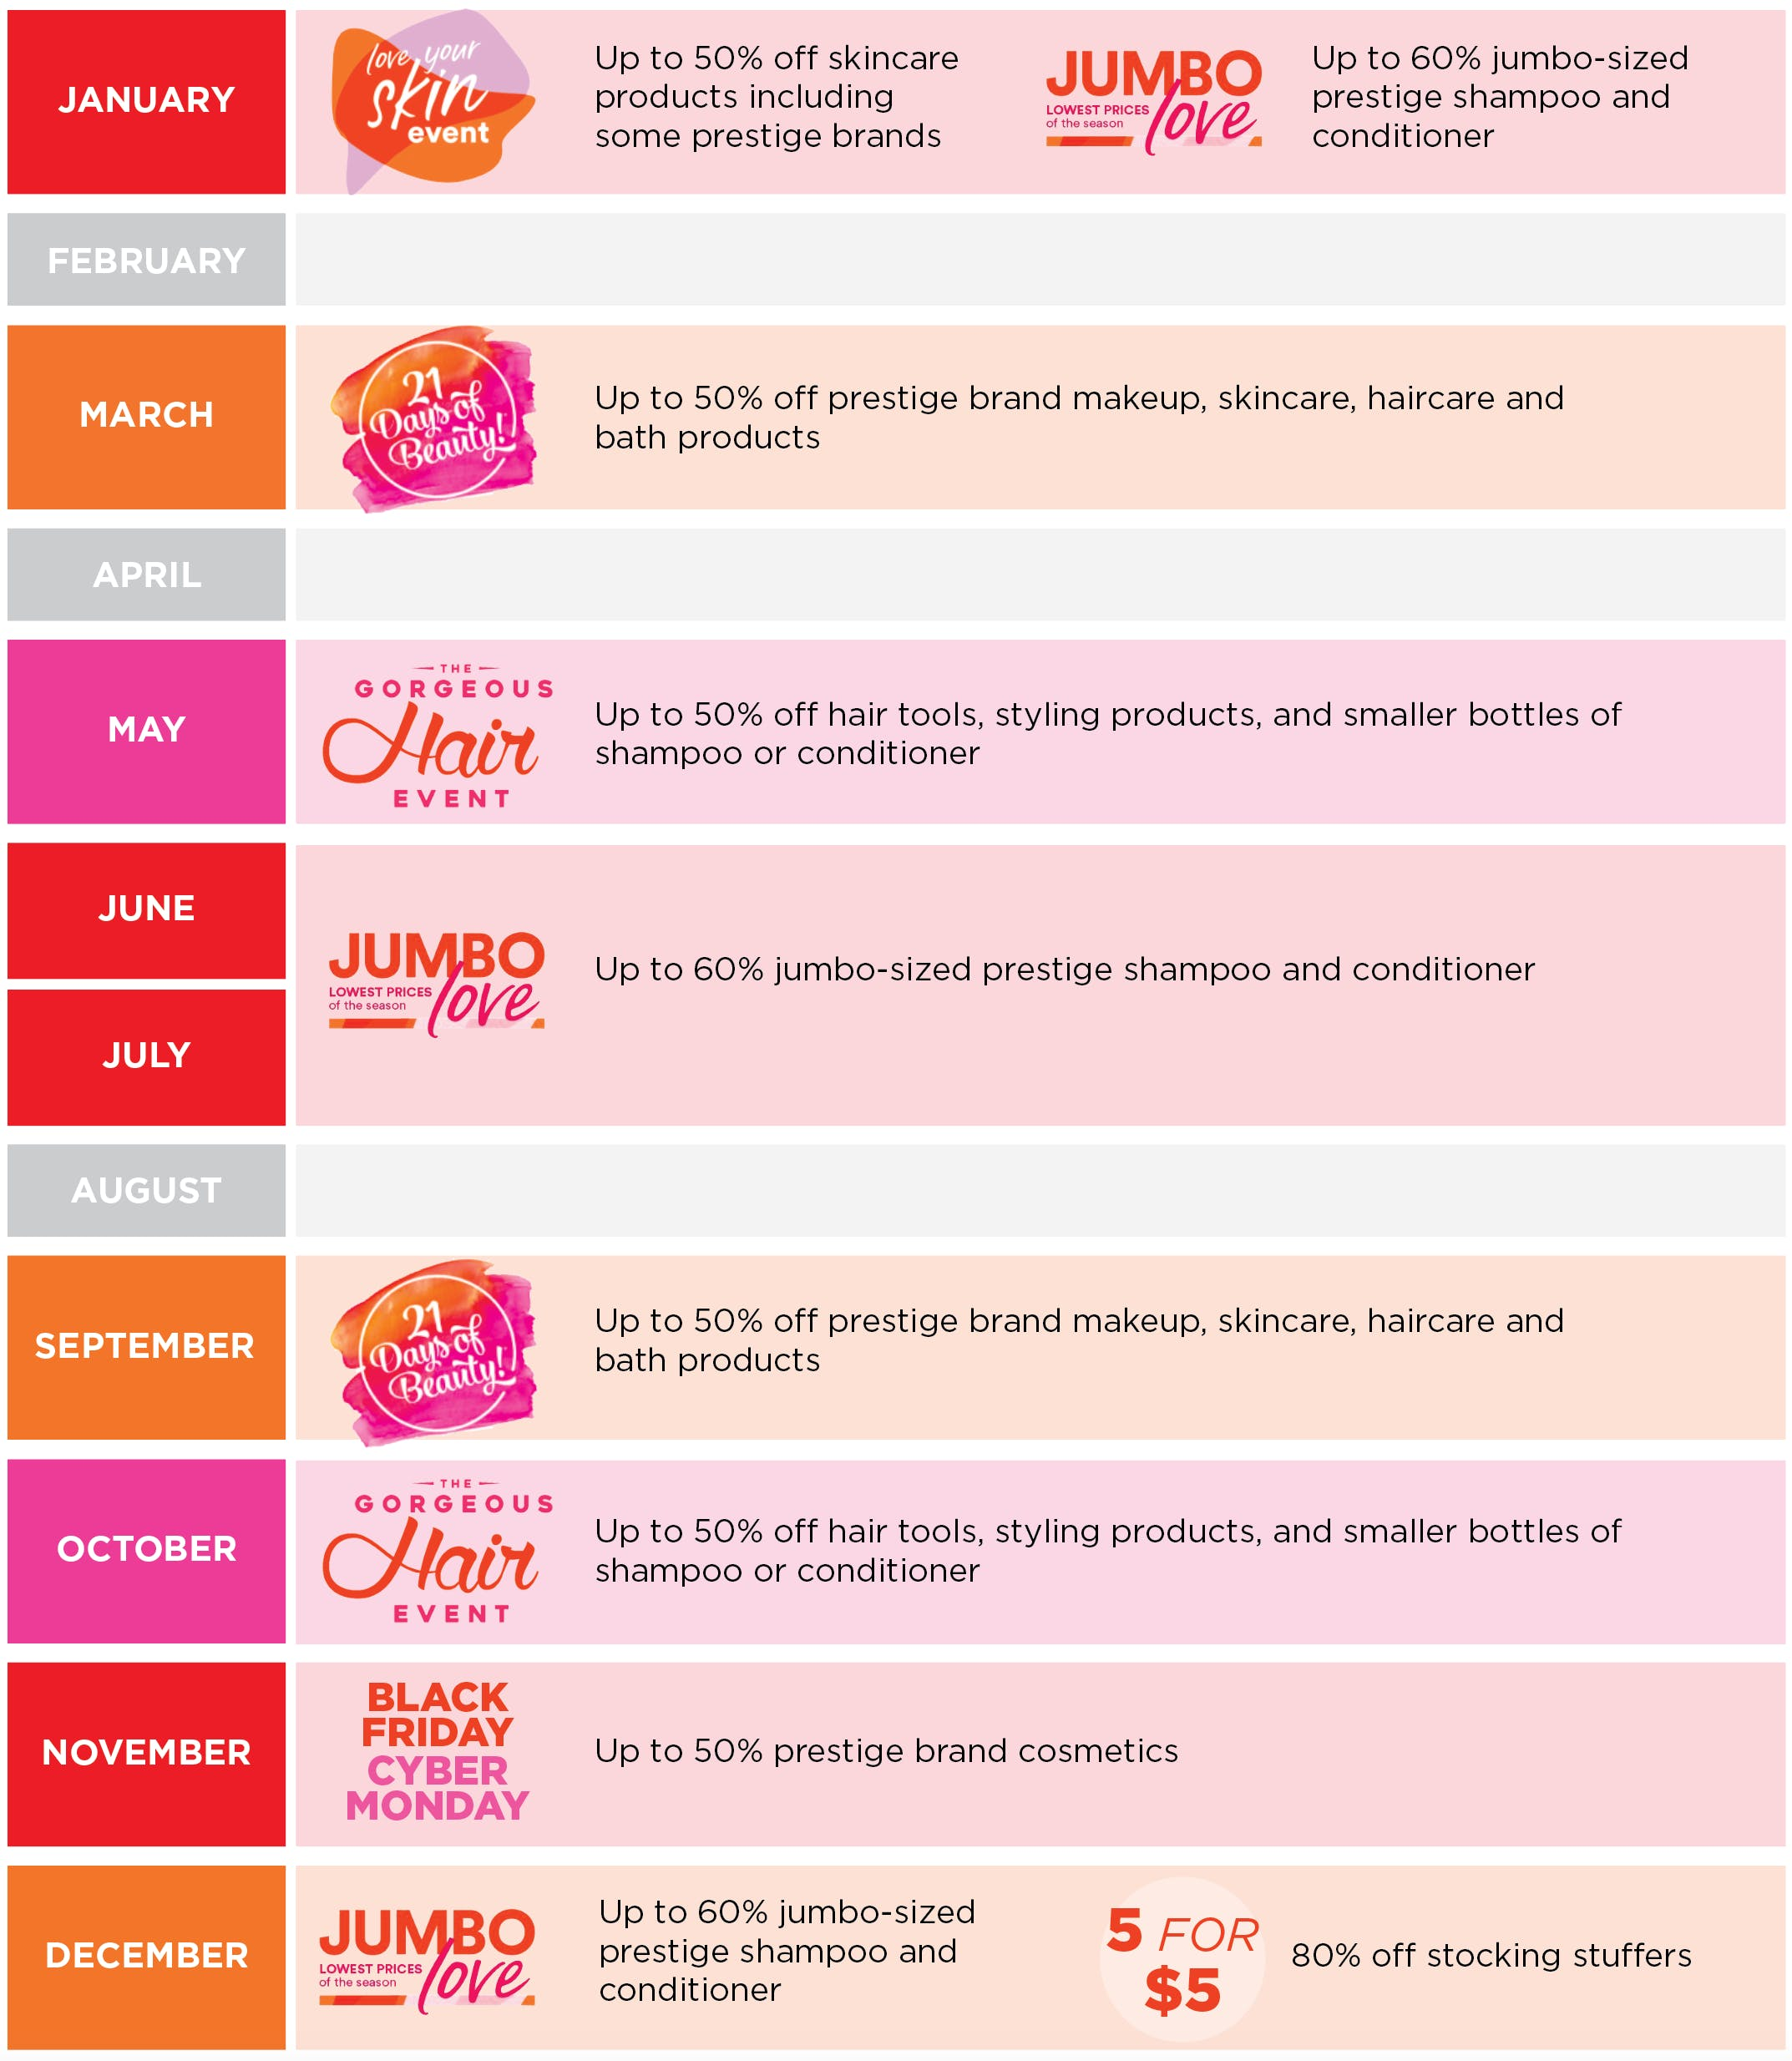 30 Ulta Beauty Hacks That Will Save You Serious Cash The Krazy Coupon Lady